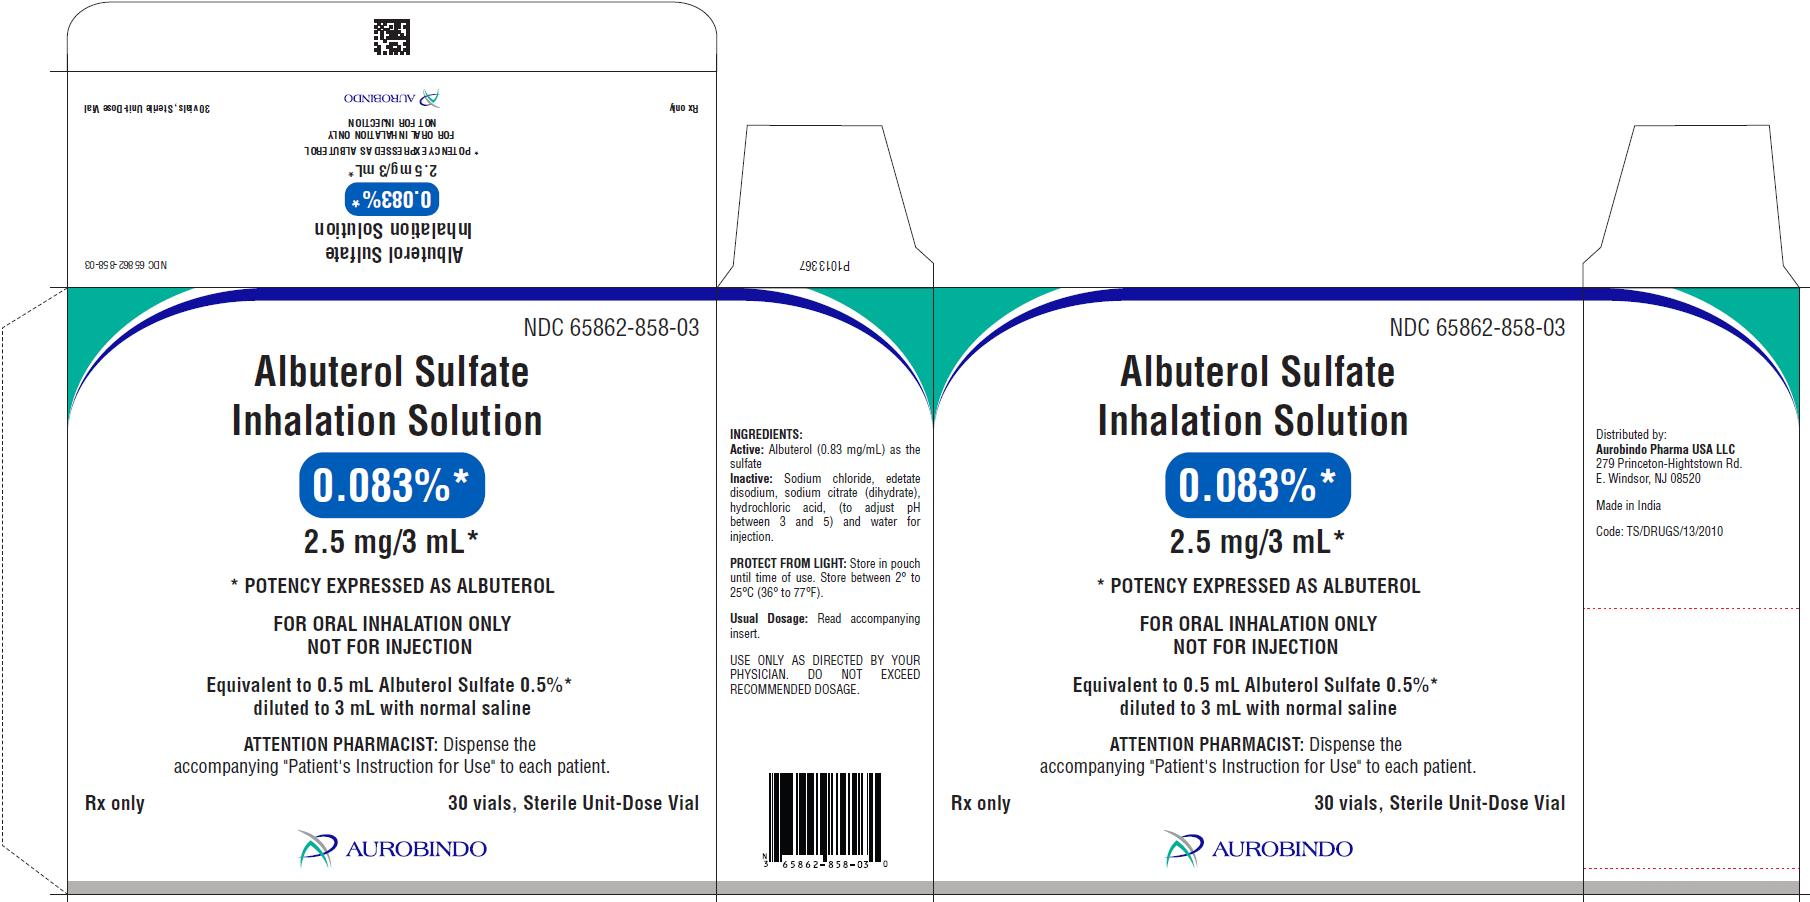 PACKAGE LABEL-PRINCIPAL DISPLAY PANEL - 0.083% (2.5 mg/3 mL) - Container-Carton (30 Individually Wrapped Vials)